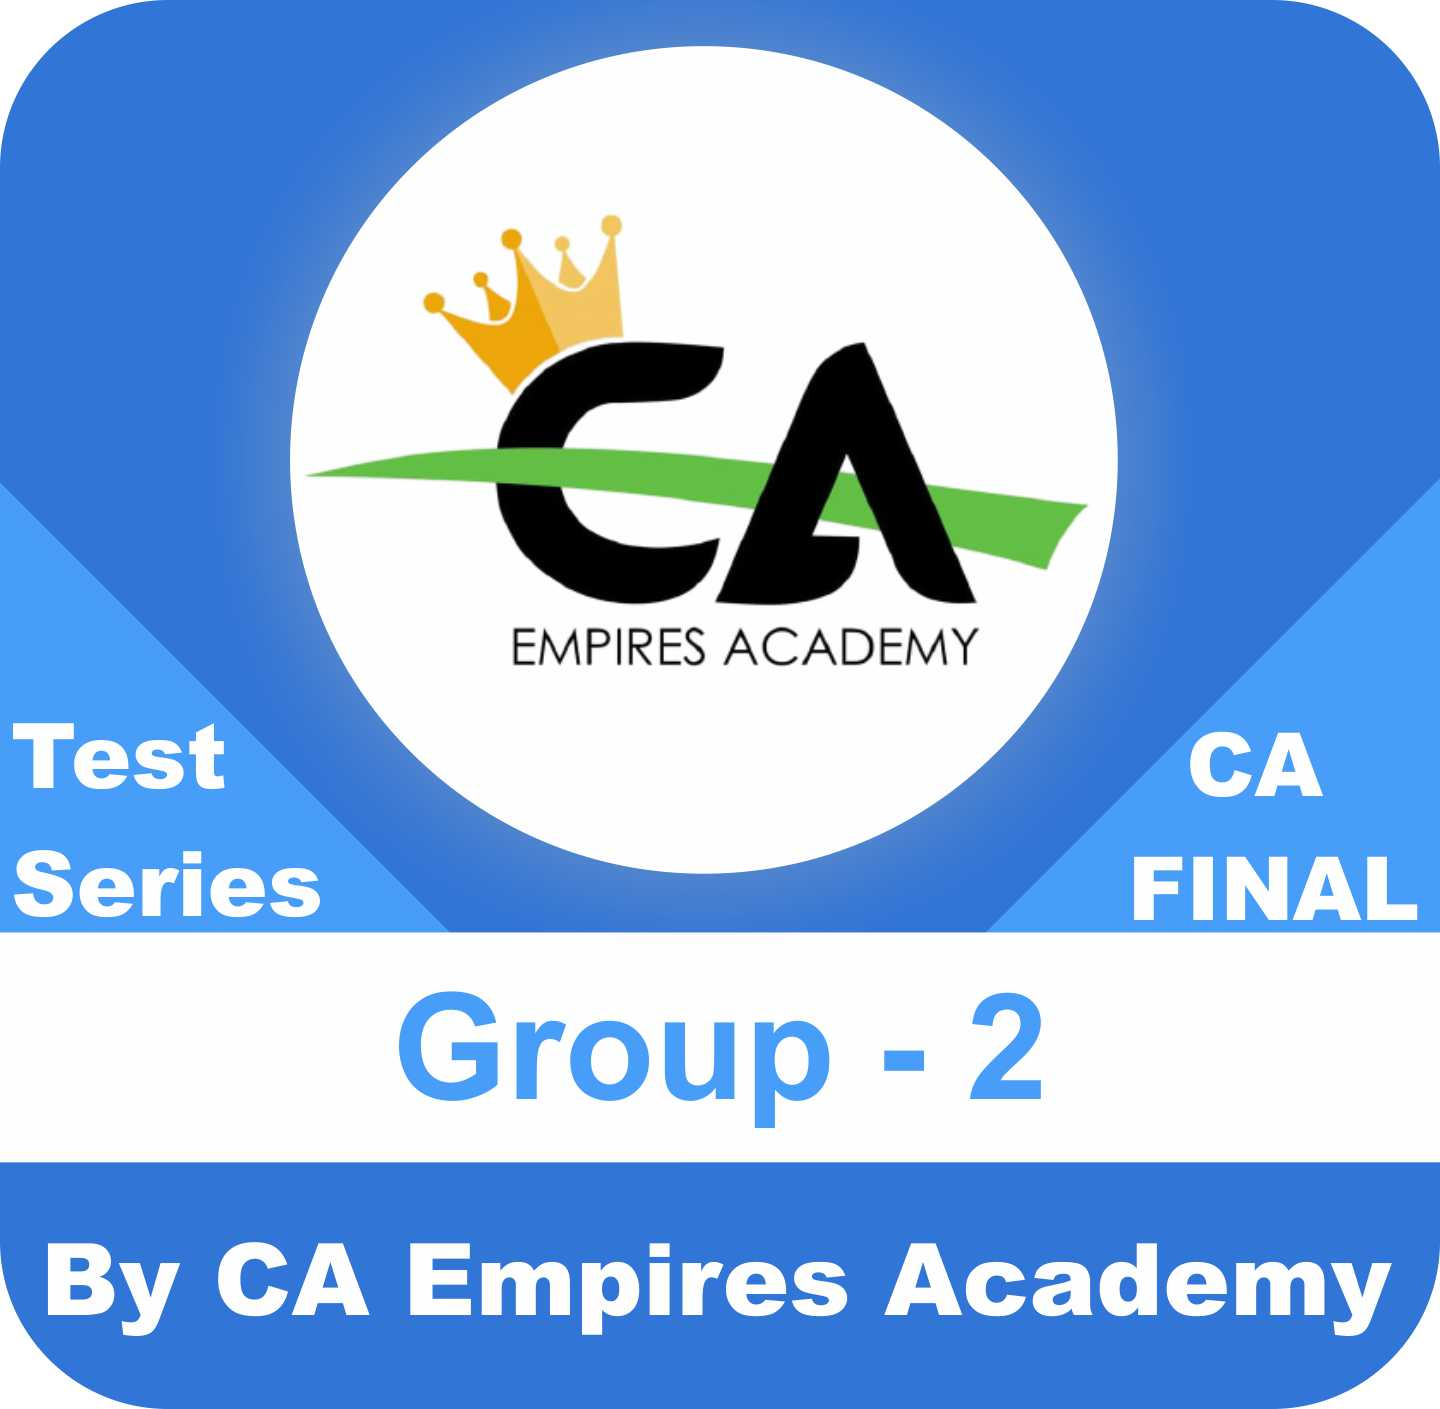 CA Final Group Two Test Series in Diamond Plan by CA Empires Academy